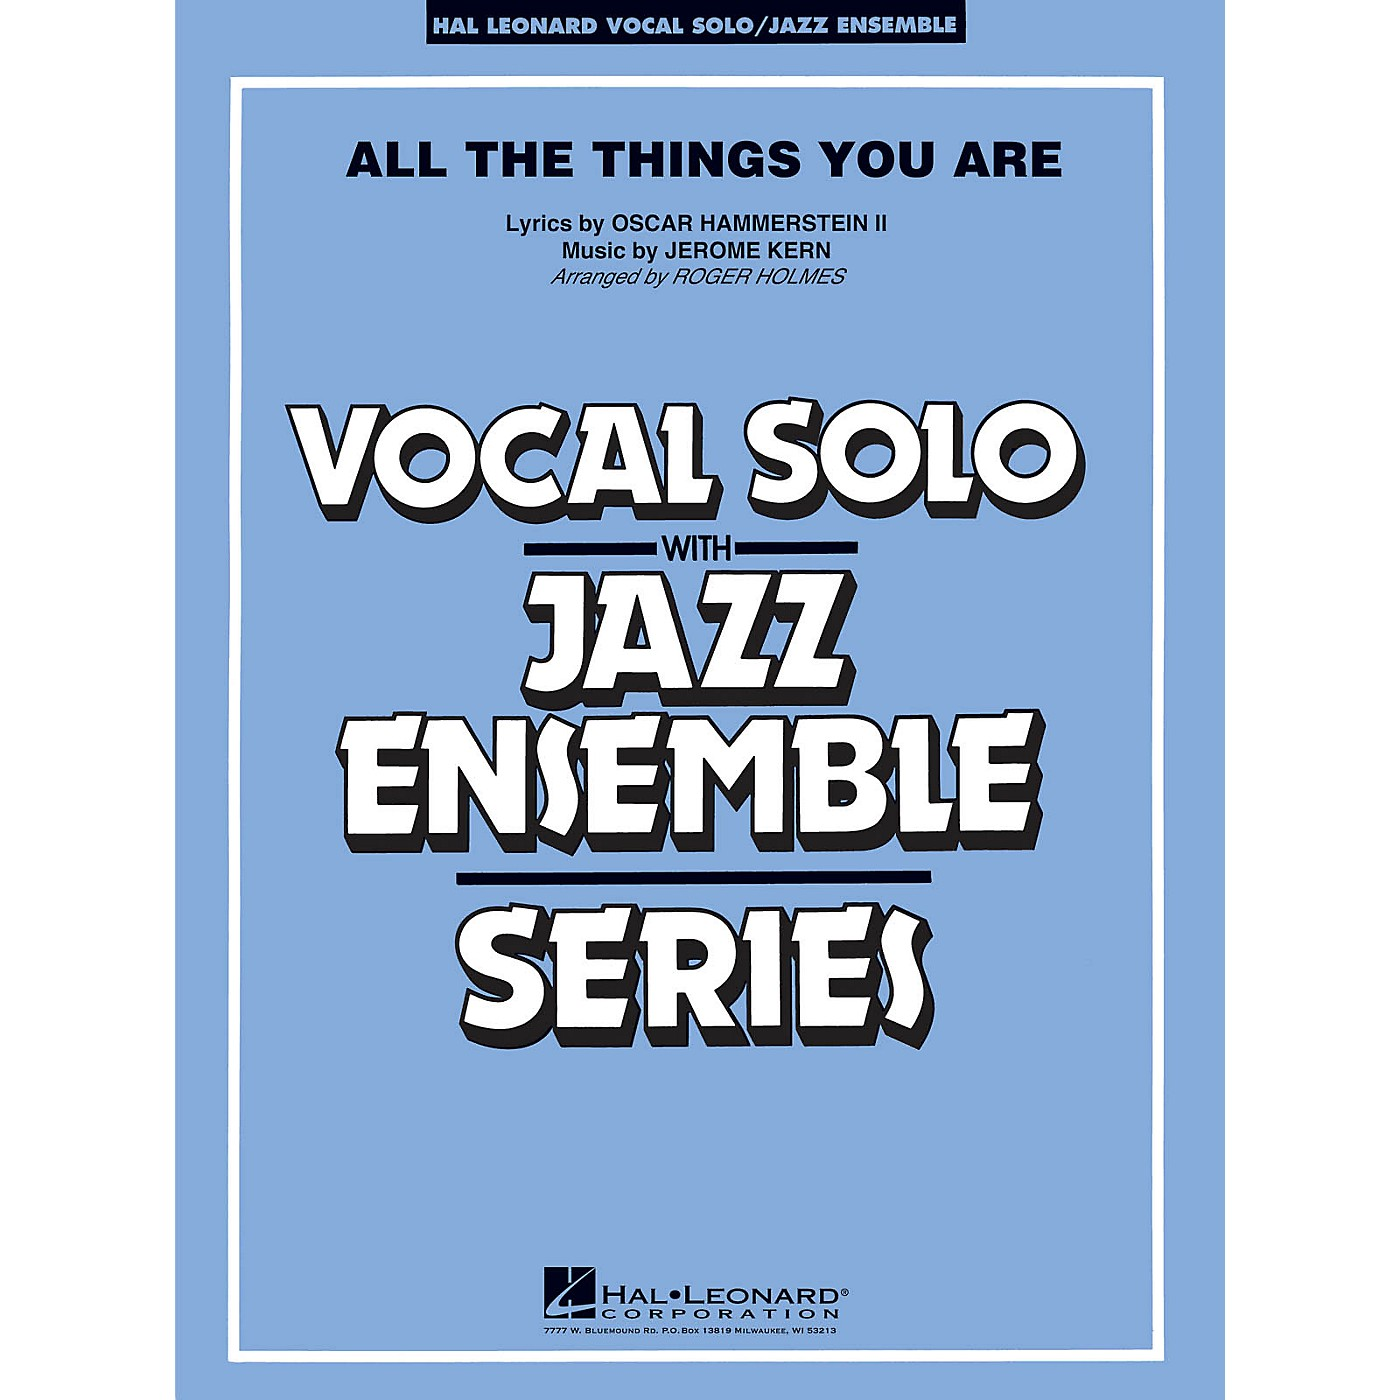 Hal Leonard All the Things You Are Jazz Band Level 4 Arranged by Roger Holmes thumbnail